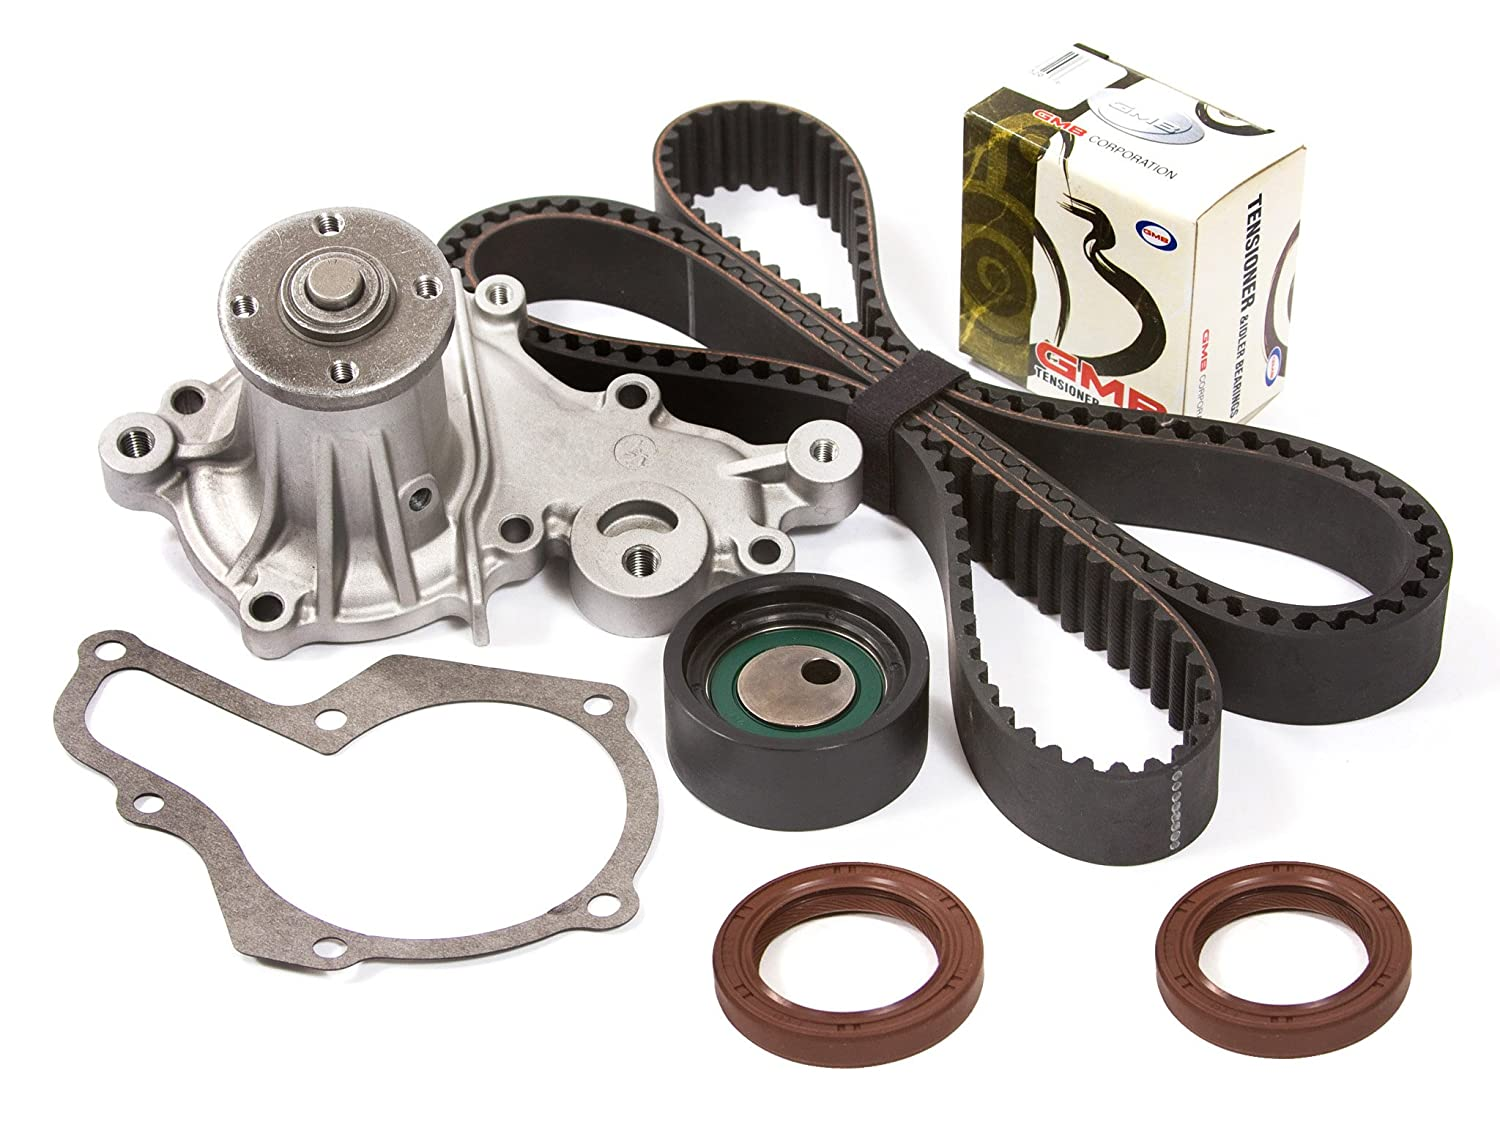 Amazon.com: Evergreen TBK095WPT Suzuki G13A 8-Valves SOHC Timing Belt Kit  w/ Water Pump: Automotive